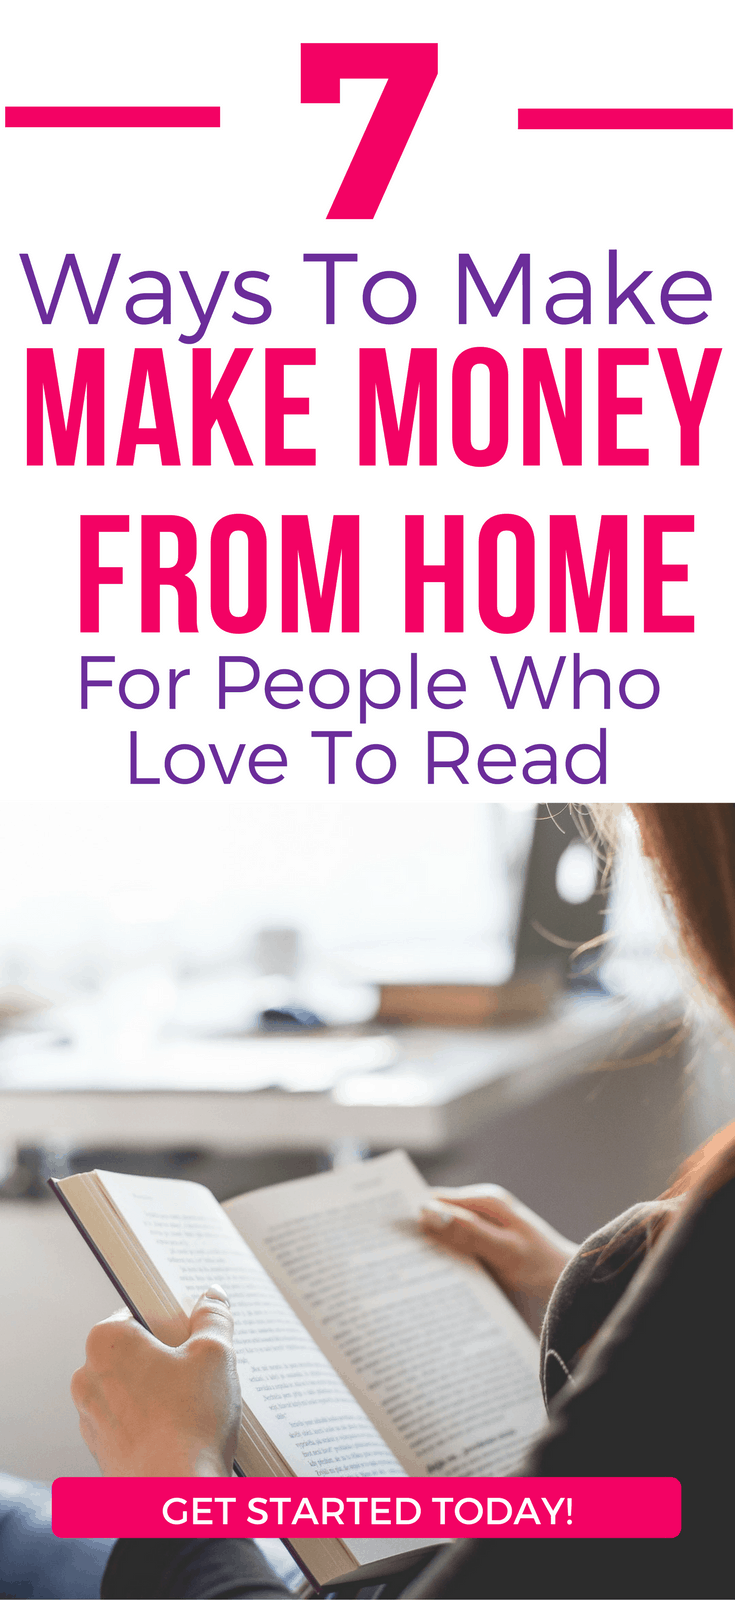 7 Ways To Make Good Money For People Who Love To Readmake more money | reading | work from home | increase your income | money making tips | money making ideas | make money online#sidehustle #reading #makemoney